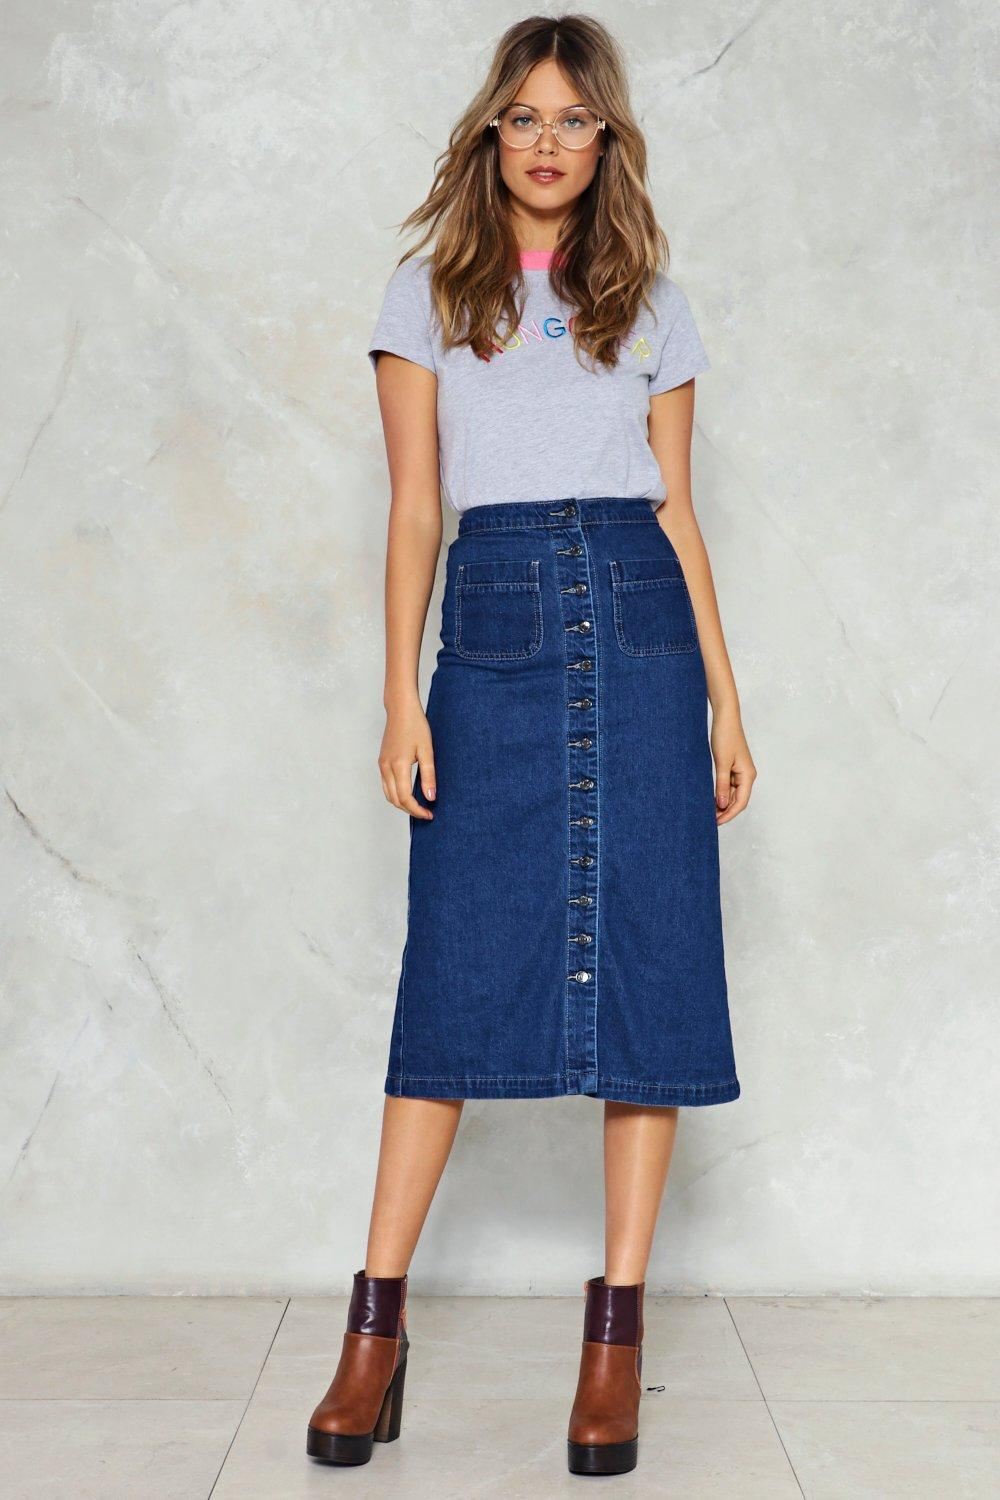 Get Down to It Denim Midi Skirt   Shop Clothes at Nasty Gal! 9635ca494f